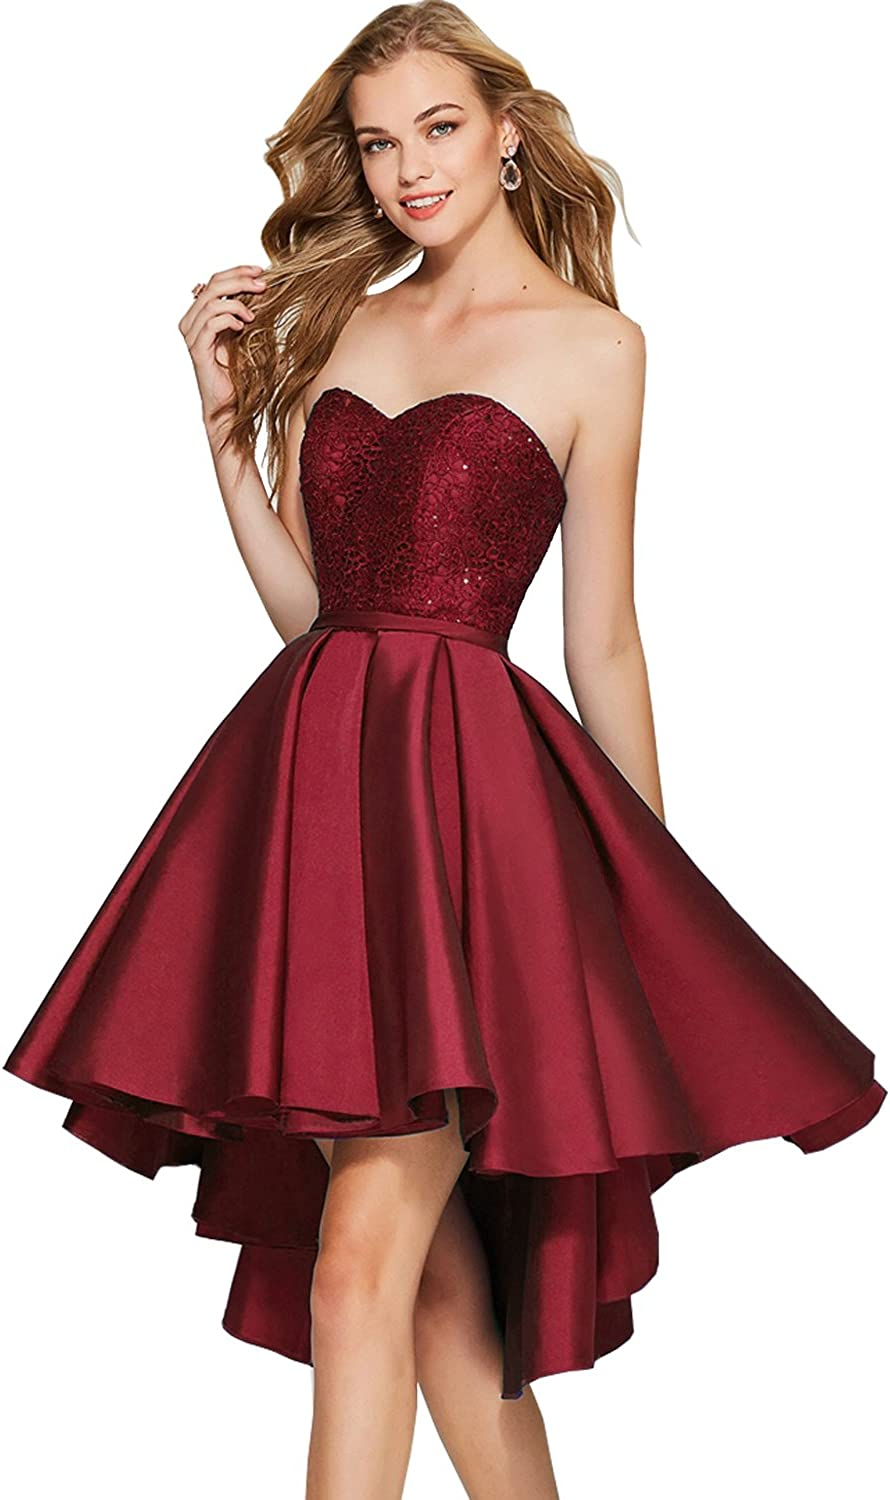 Women's A Line Sweetheart Satin High Low Homecoming Dress Short Prom Evening Gown with Lace Bodice